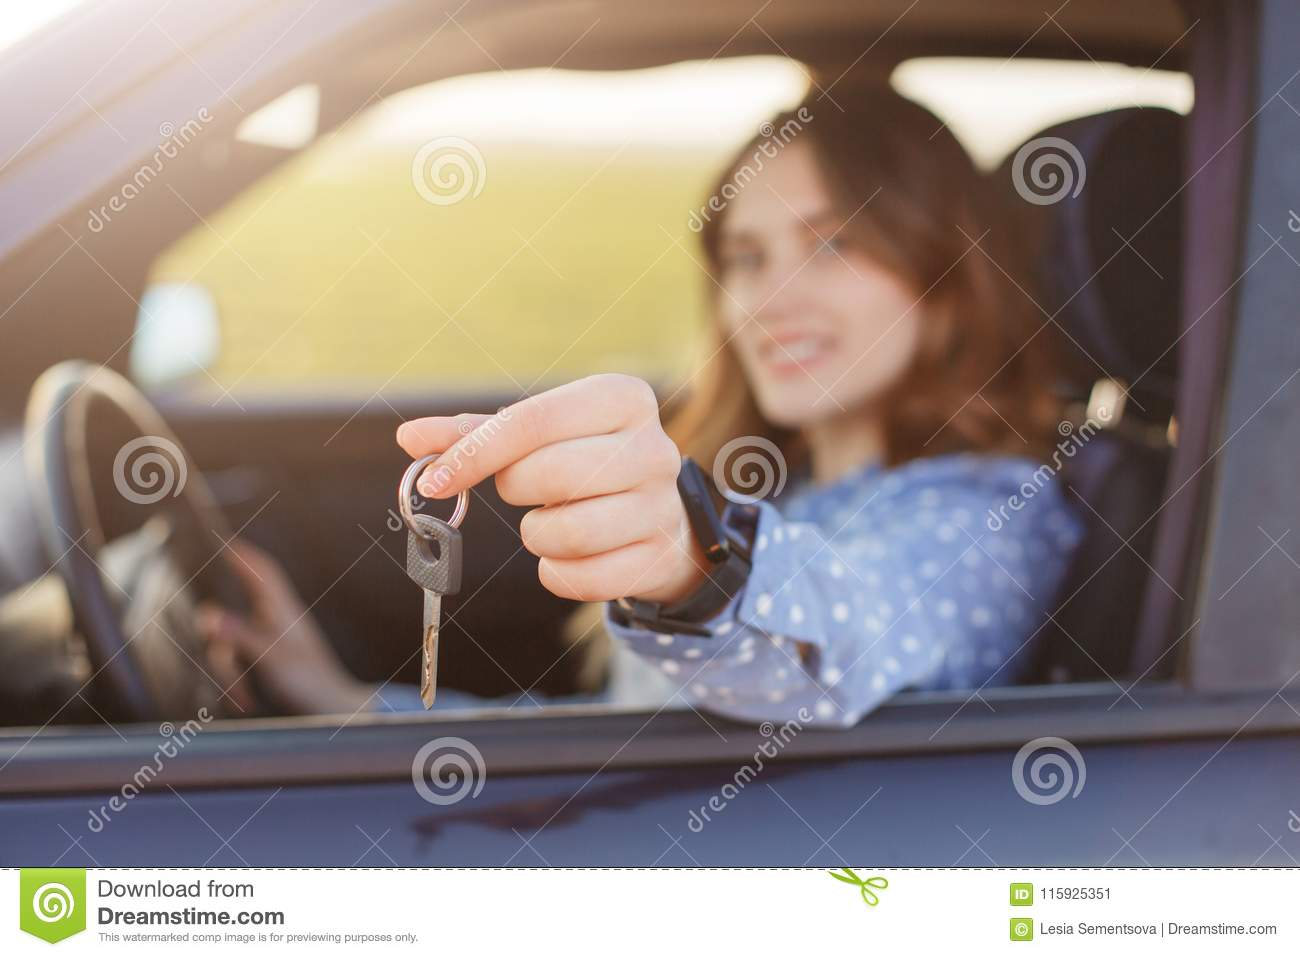 Attractive young female holds car keys, being happy owner of new automobile, blurred background. Lovely woman sells vehicle, adver